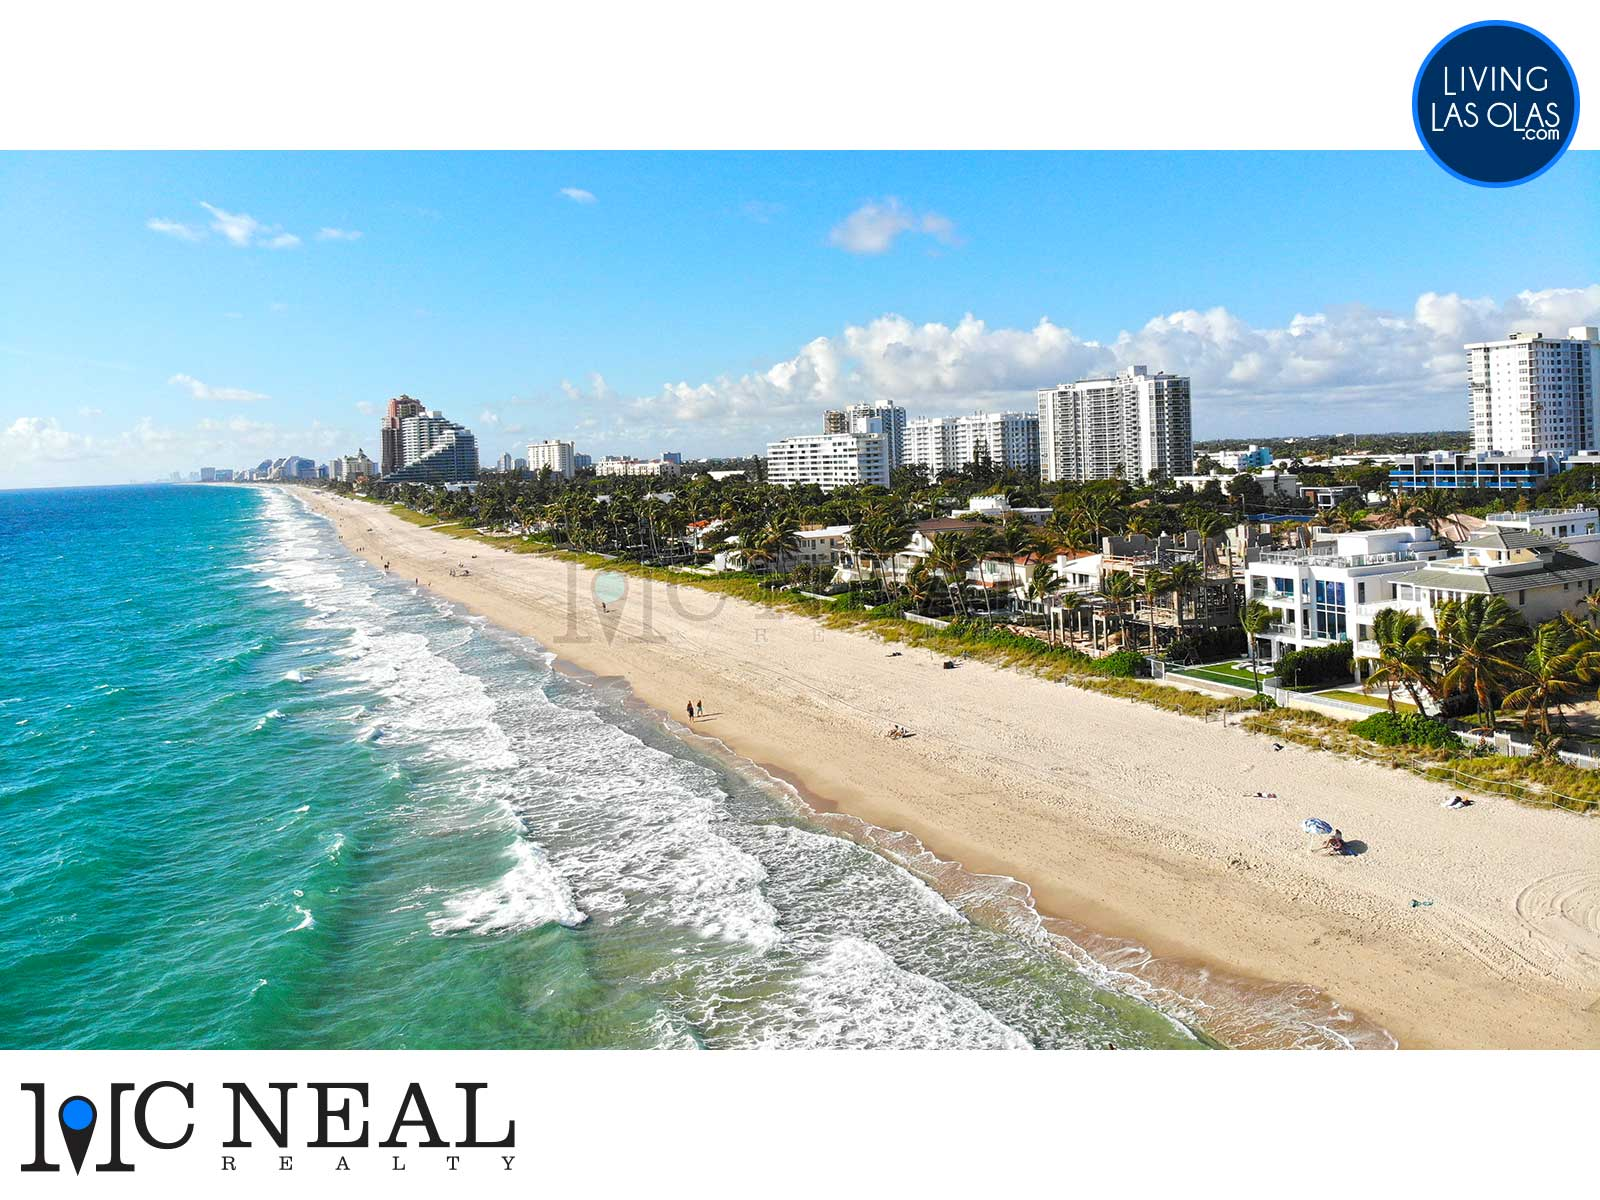 Lauderdale Beach Homes Real Estate 03